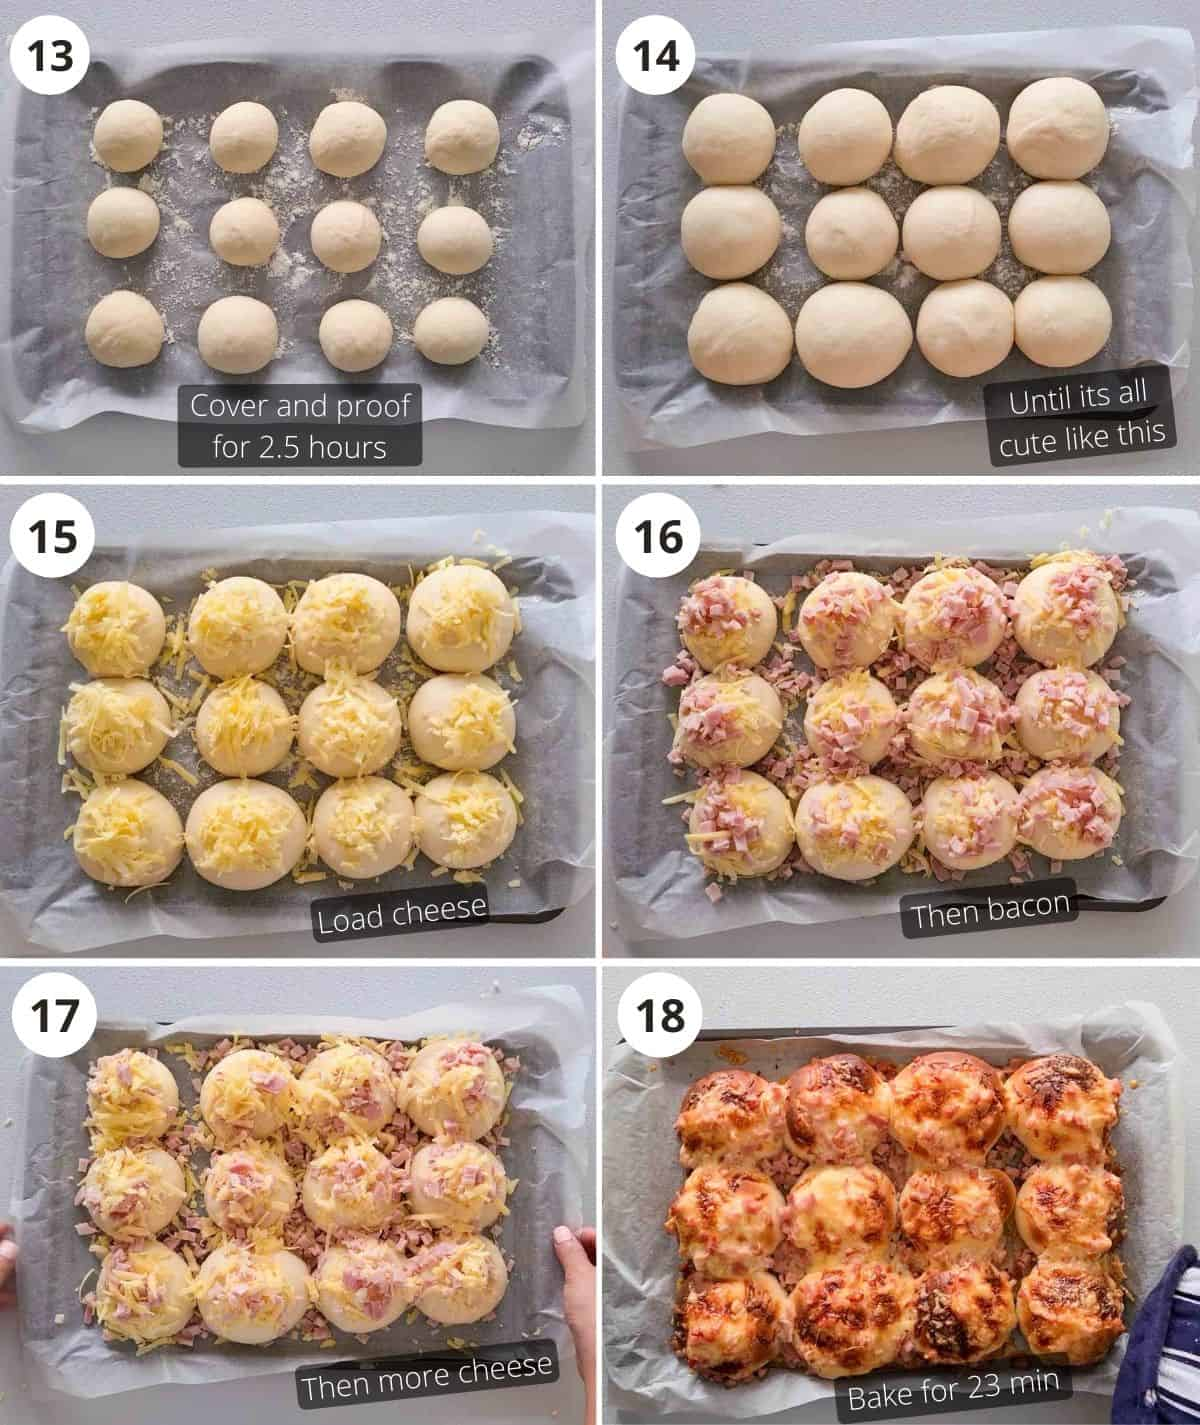 Proofing and baking step by step instructions